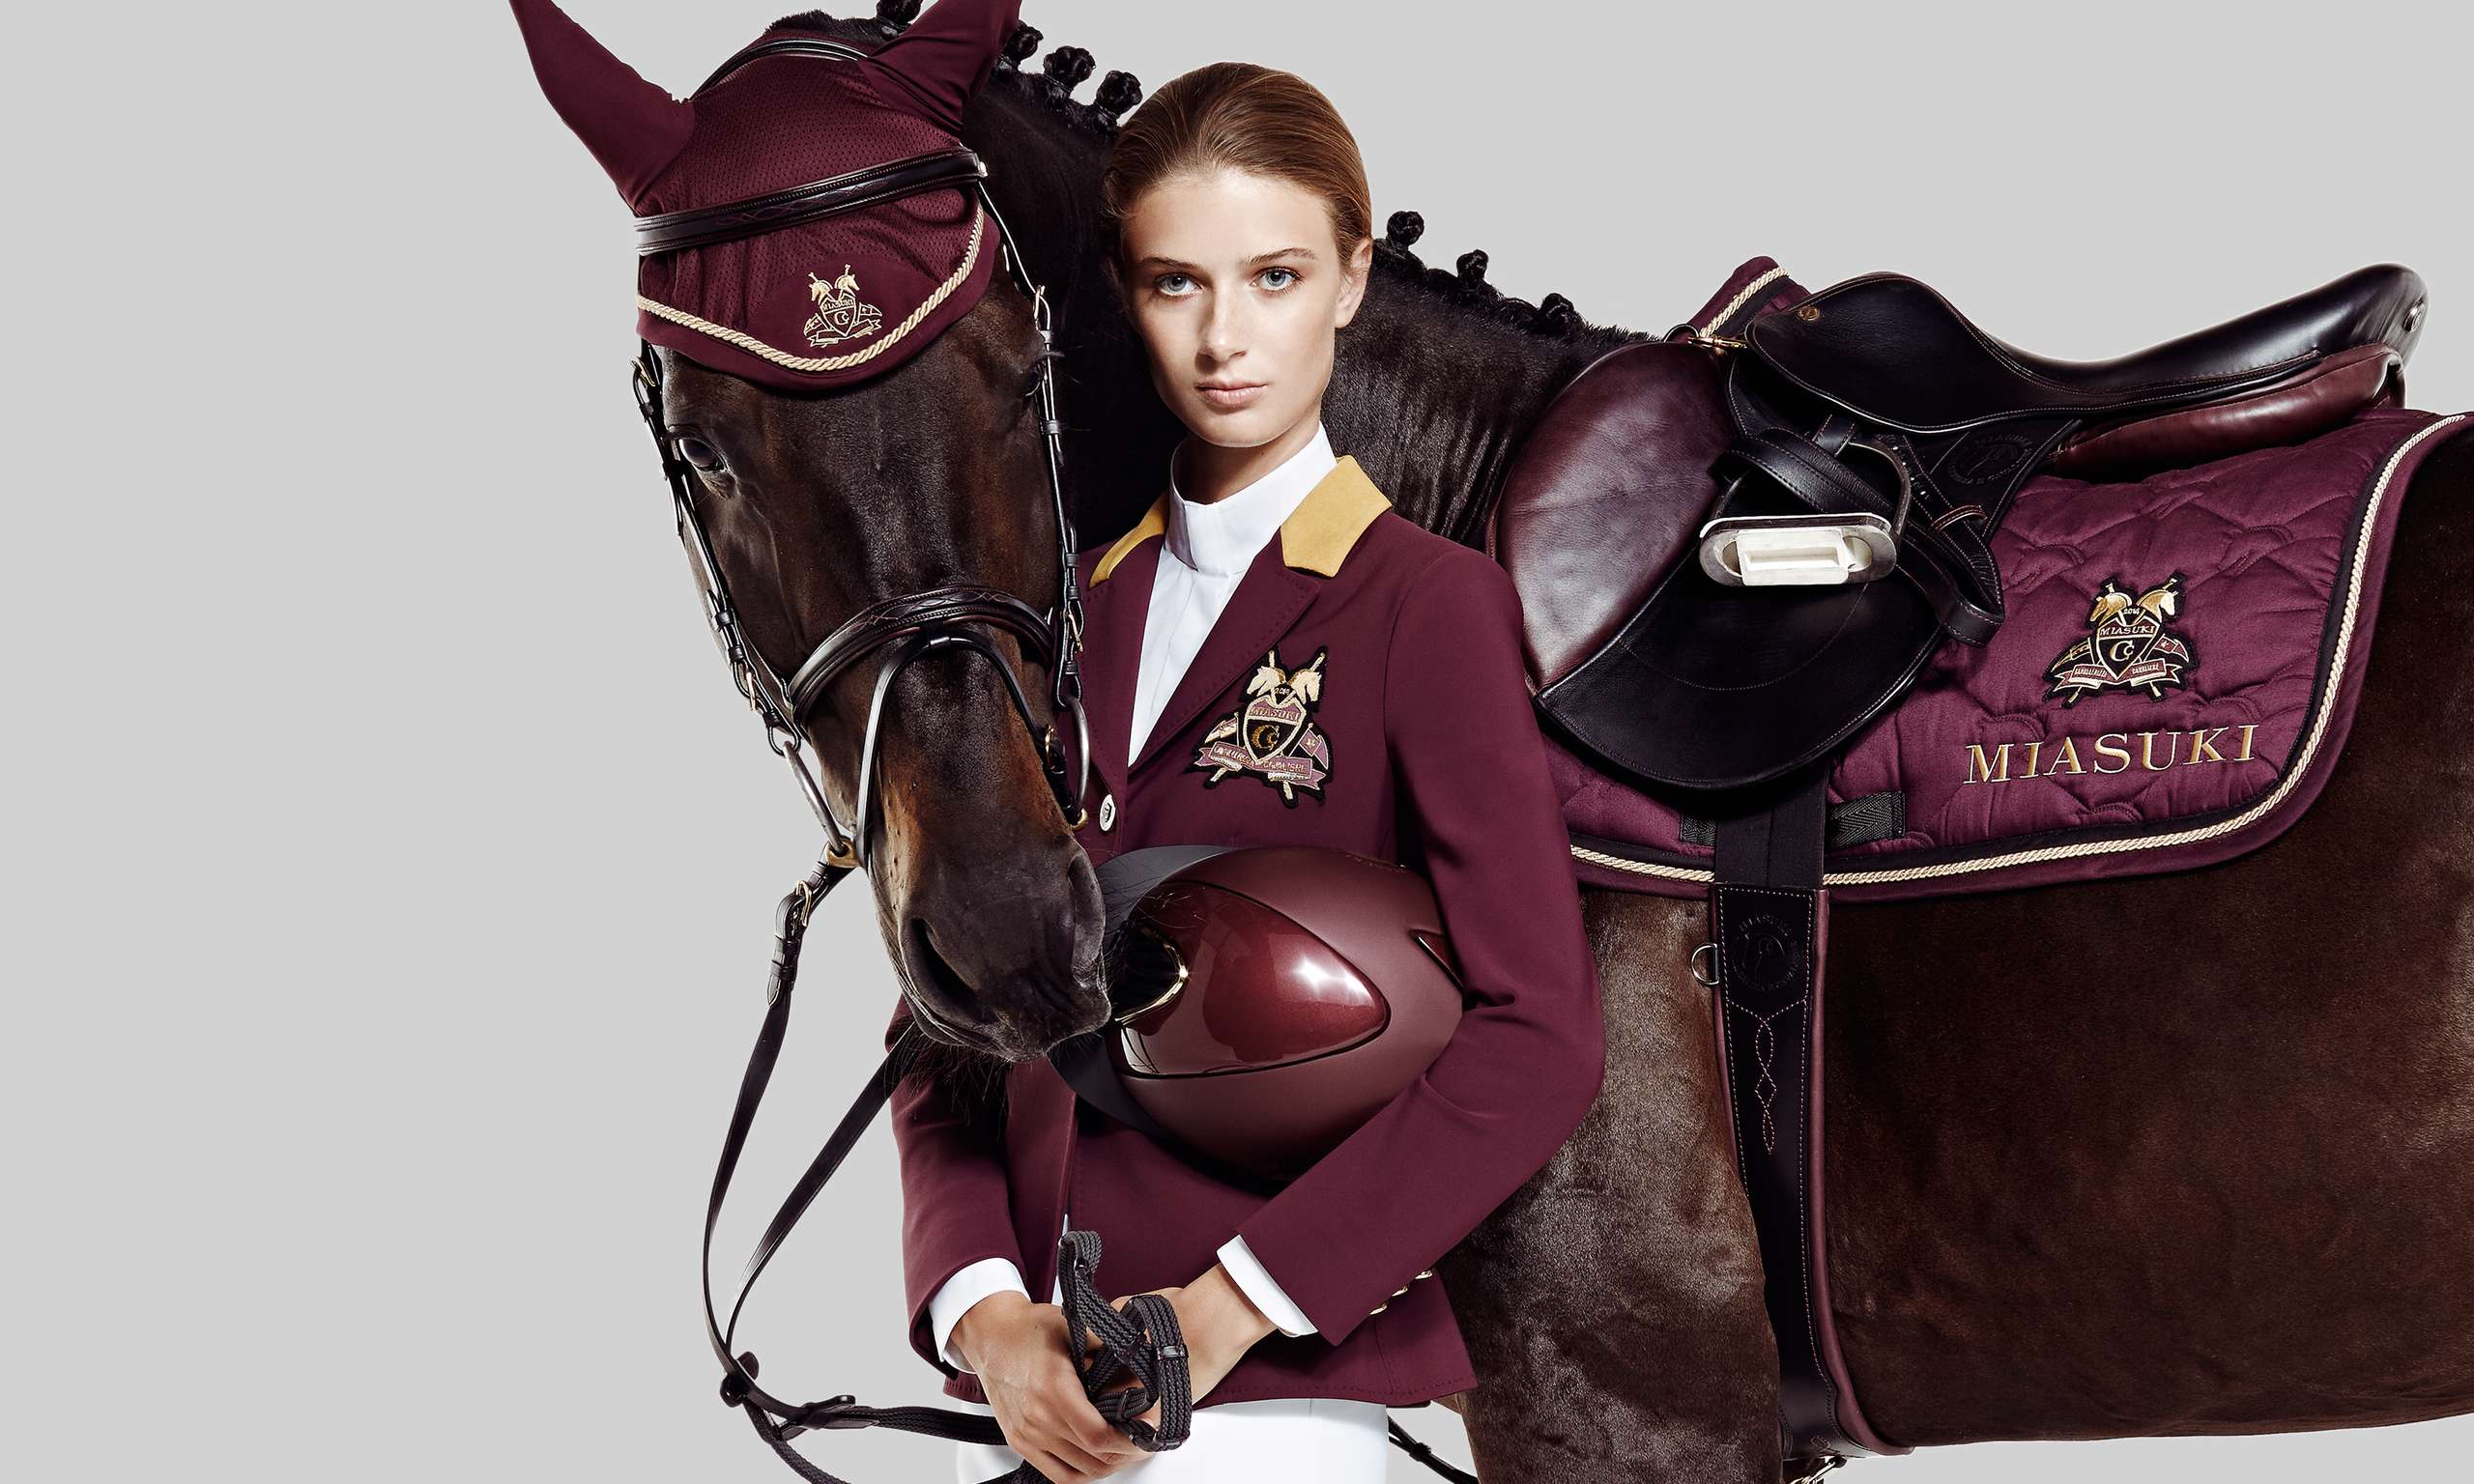 Female model in equistrian clothes and horse